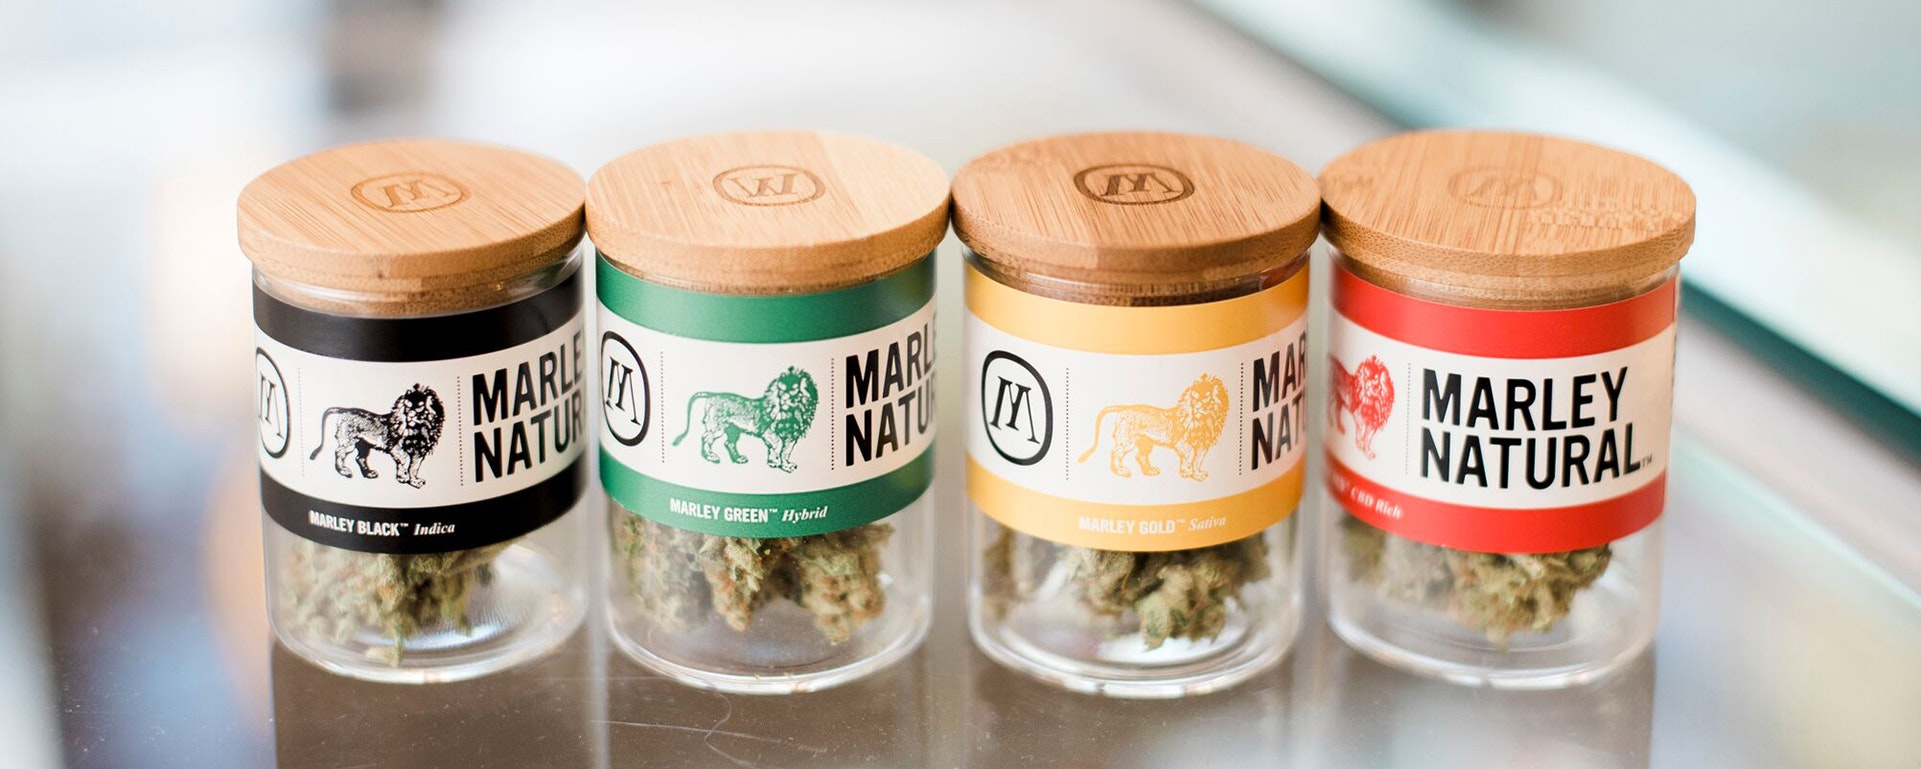 marley natural marijuana